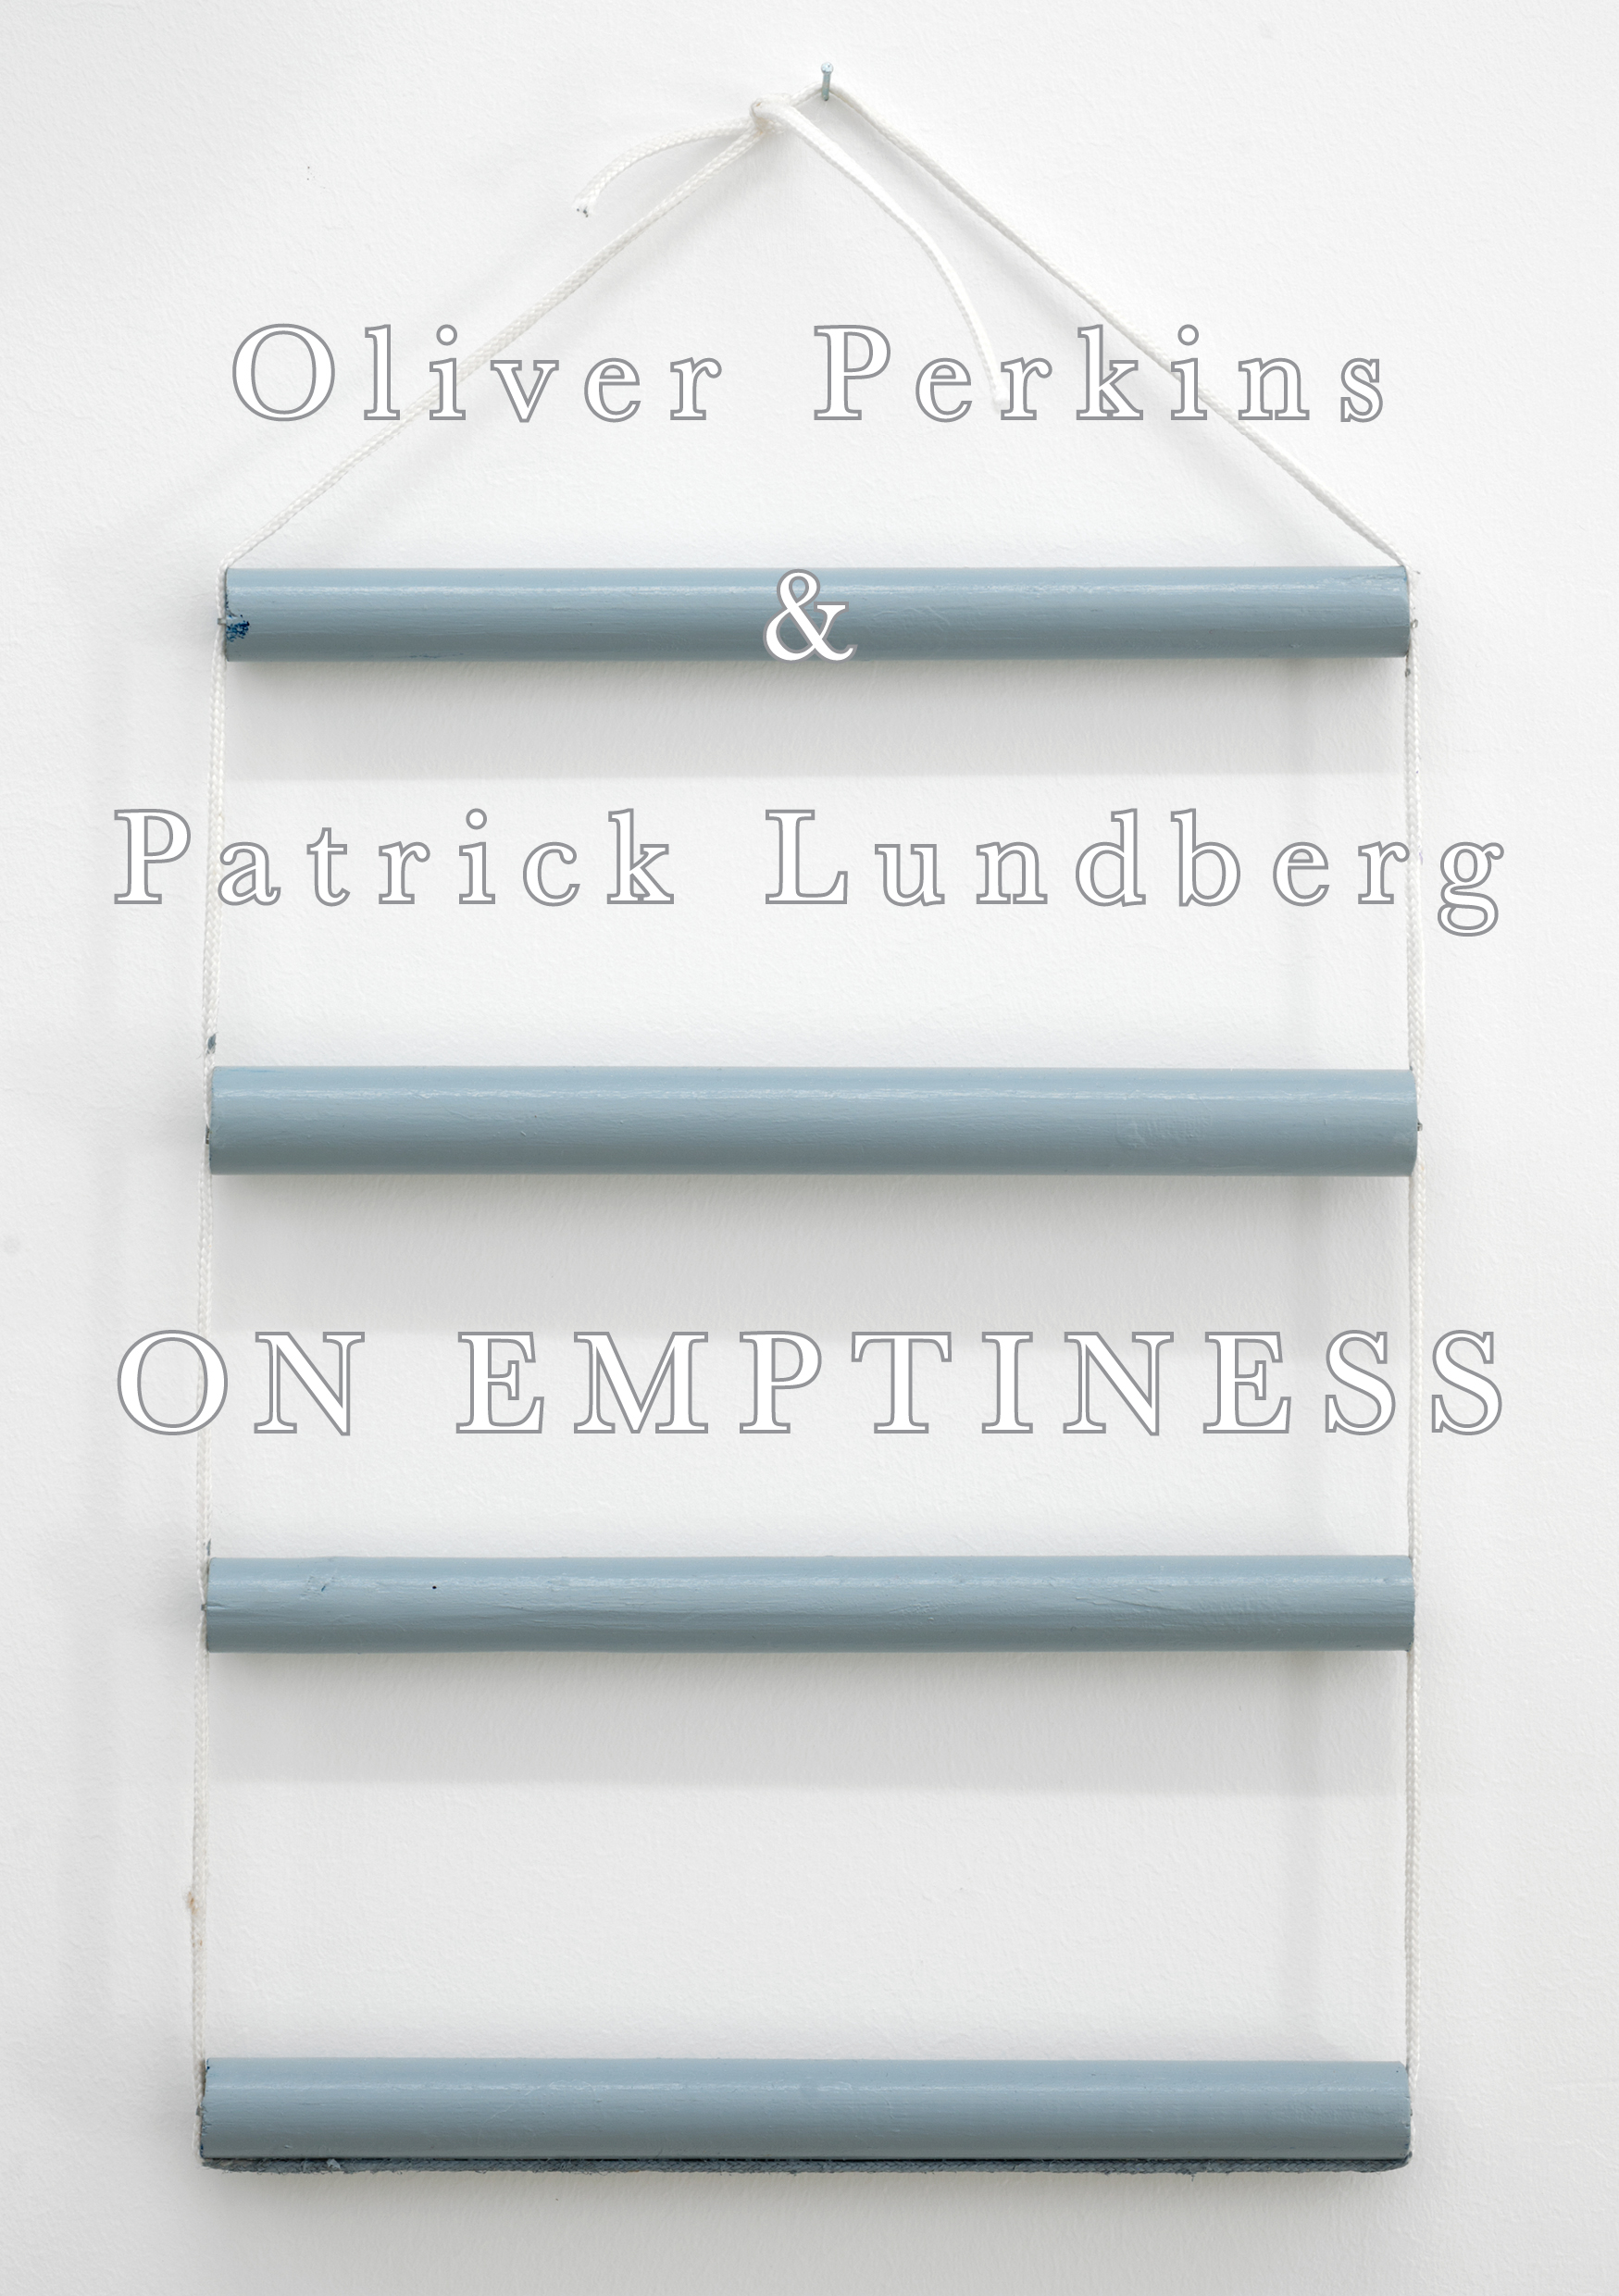 On Emptiness